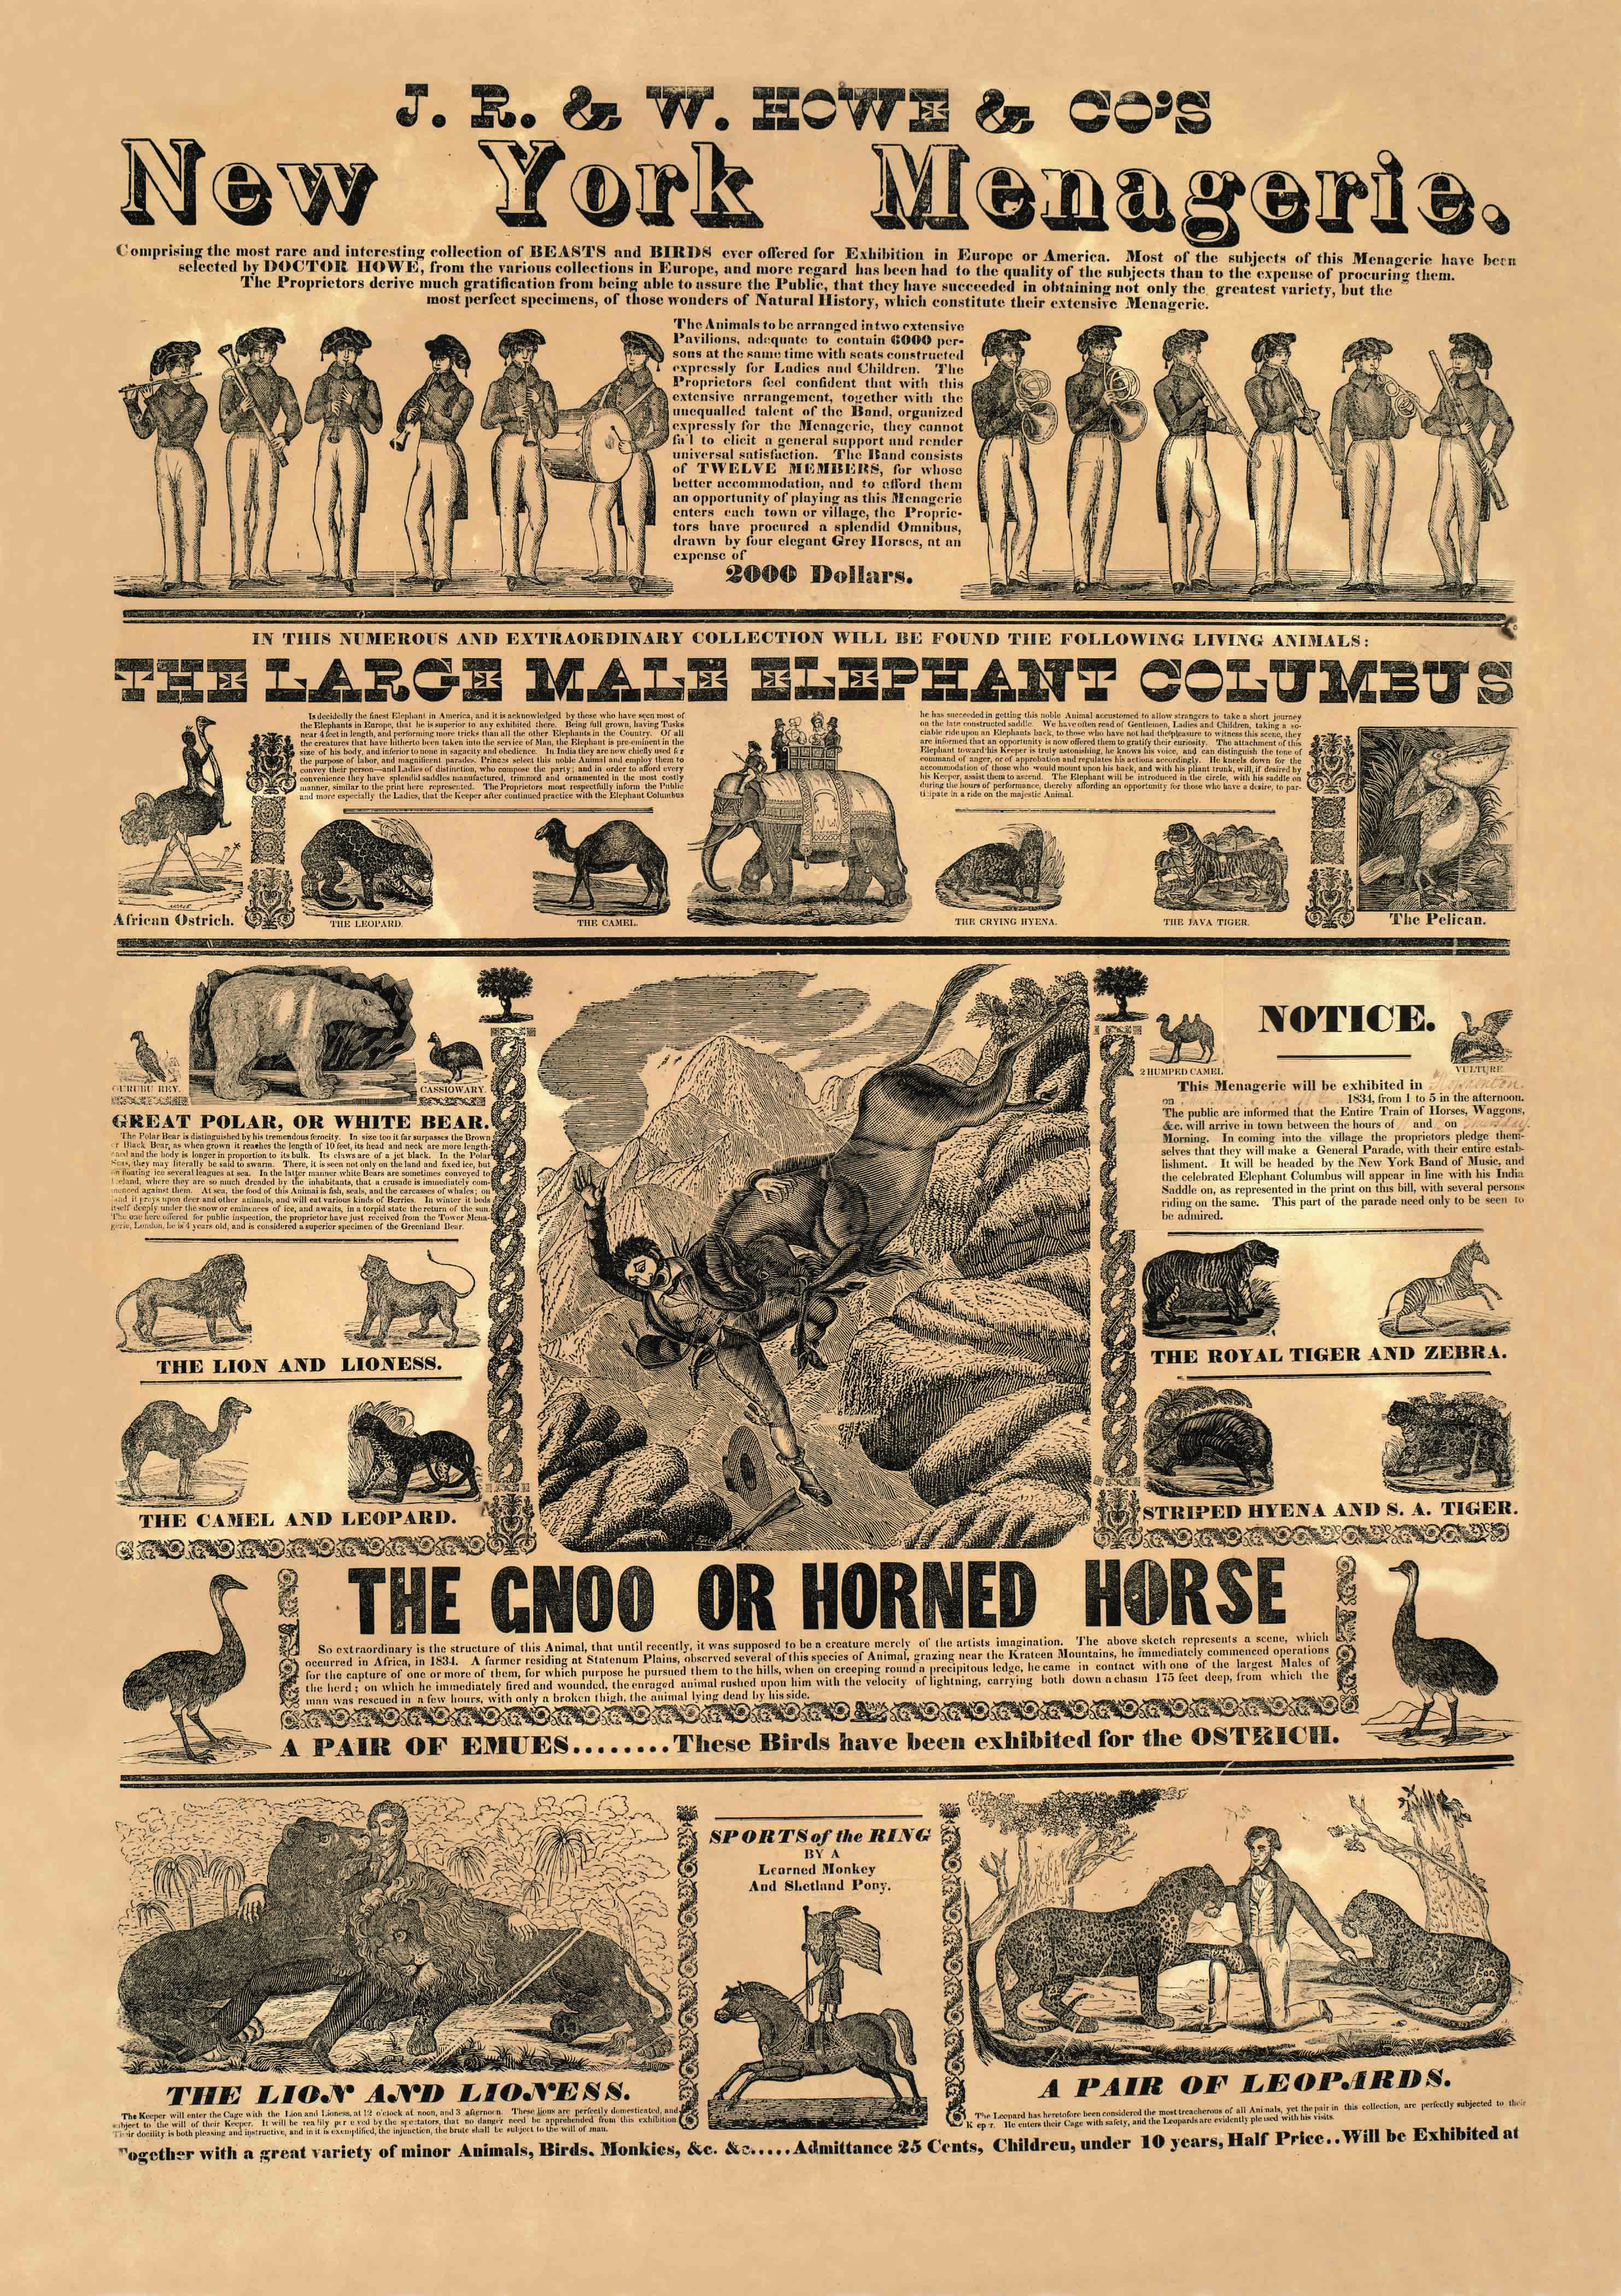 Poster for J.R. & W. Howe & Co.'s New York Menagerie, 1834